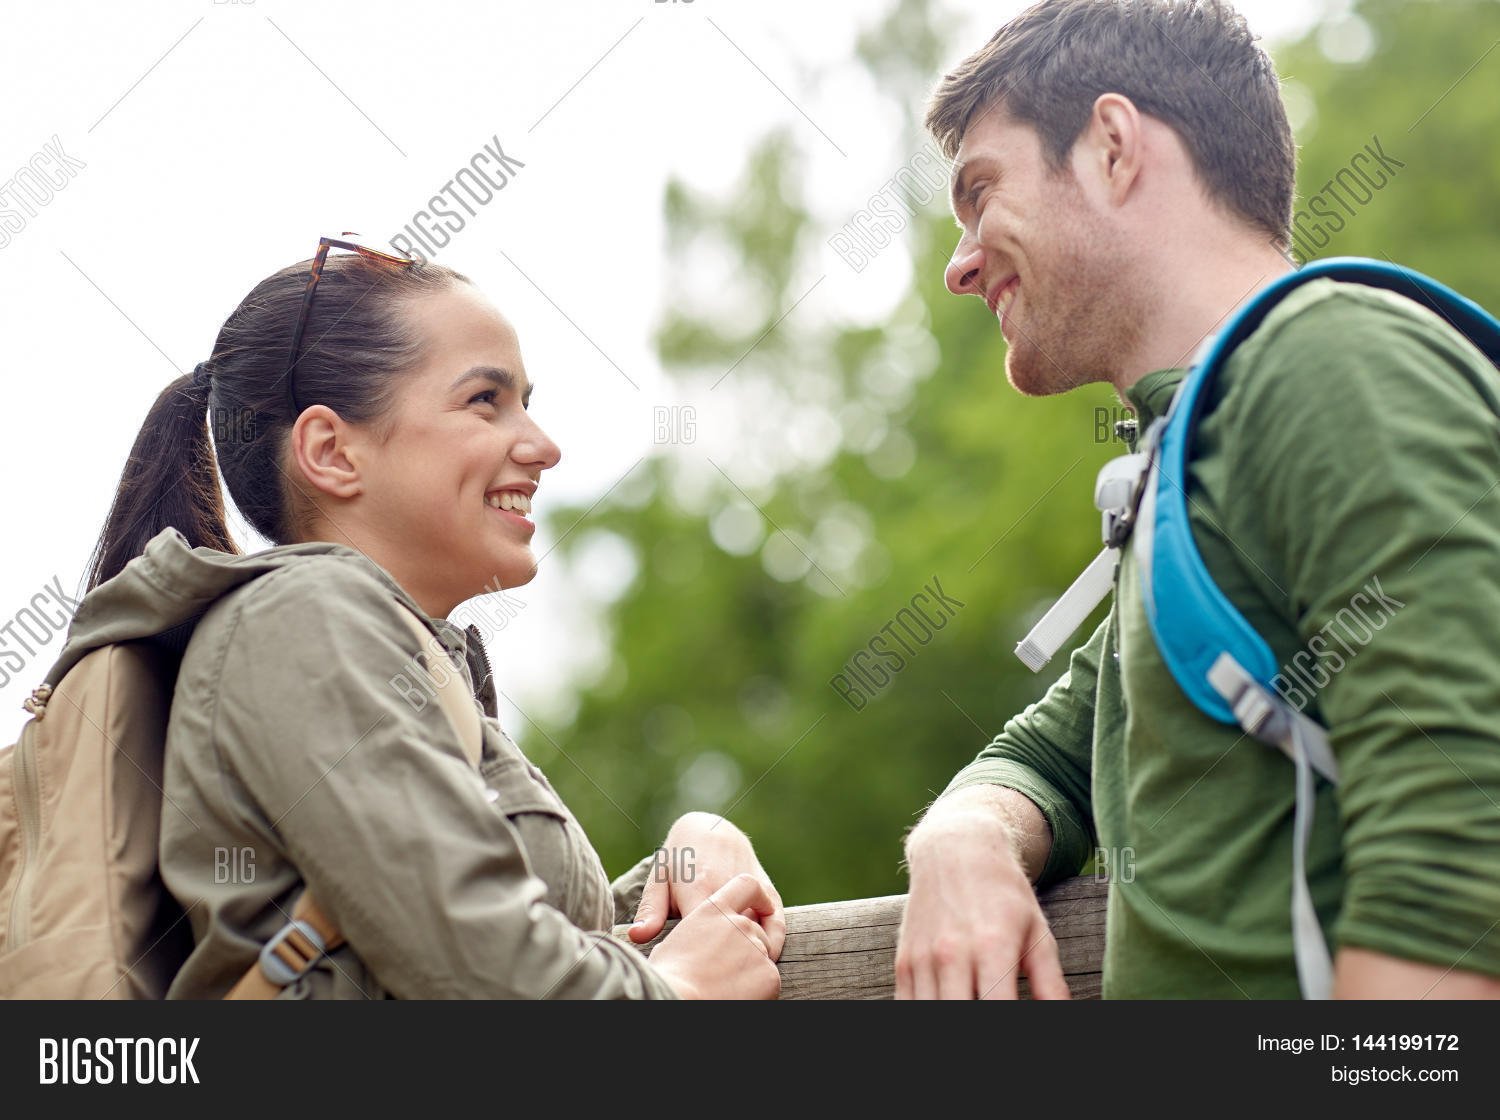 Image result for free images of people smiling and talking to each other